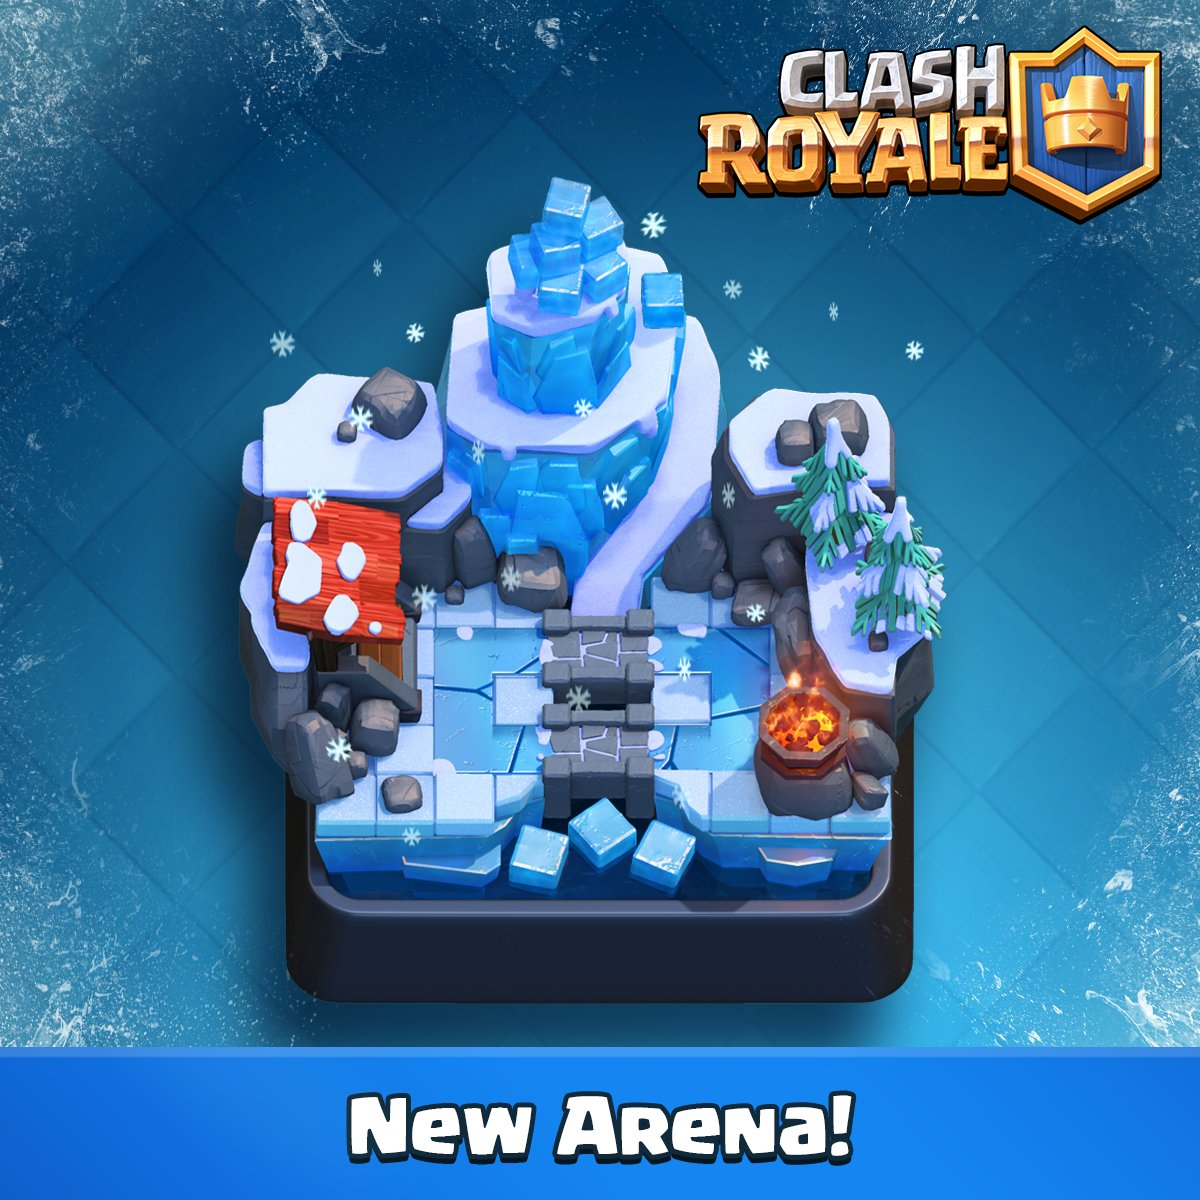 how to make a new clash royale account